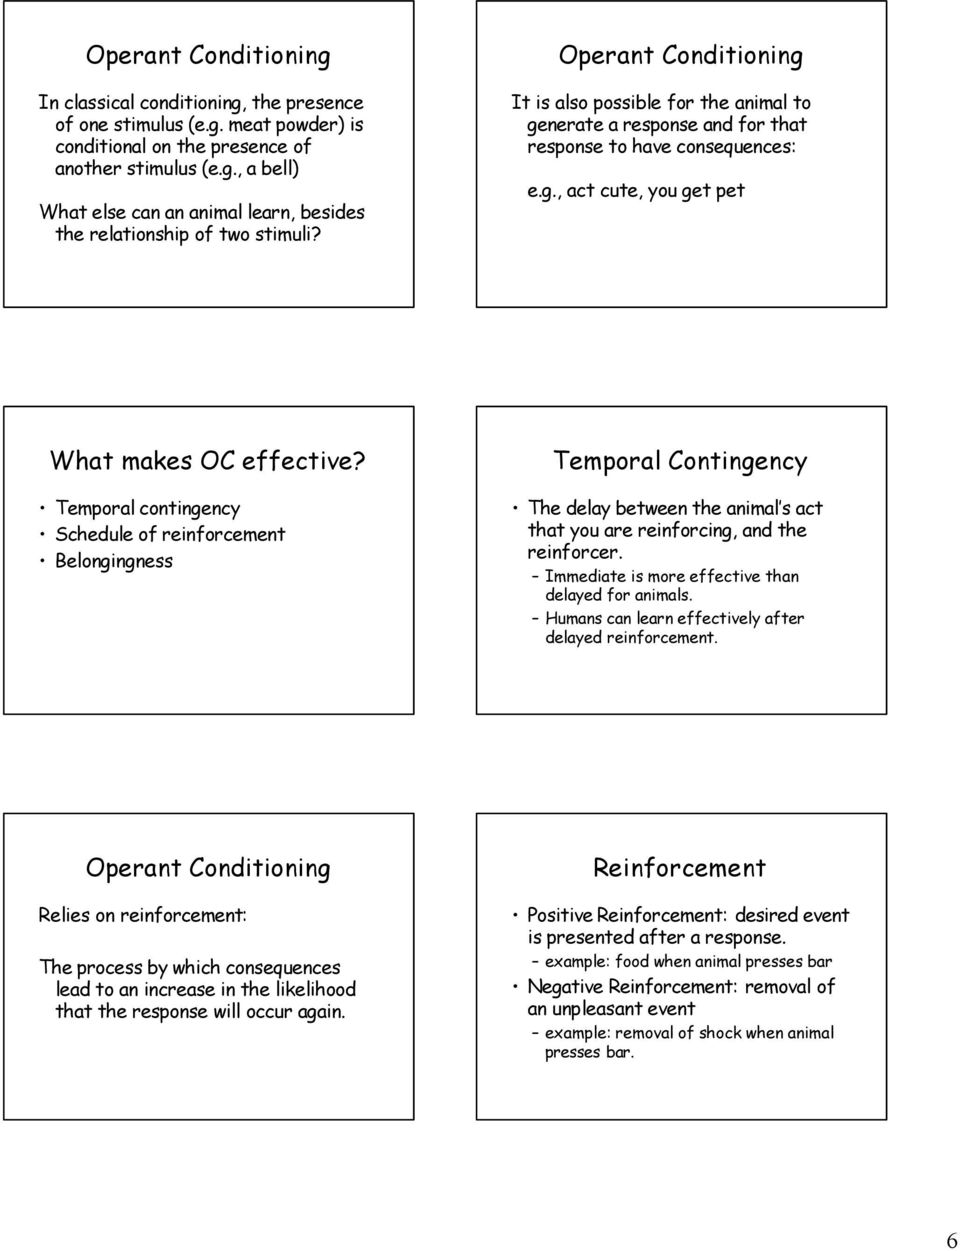 classical conditioning and operant conditioning exercises